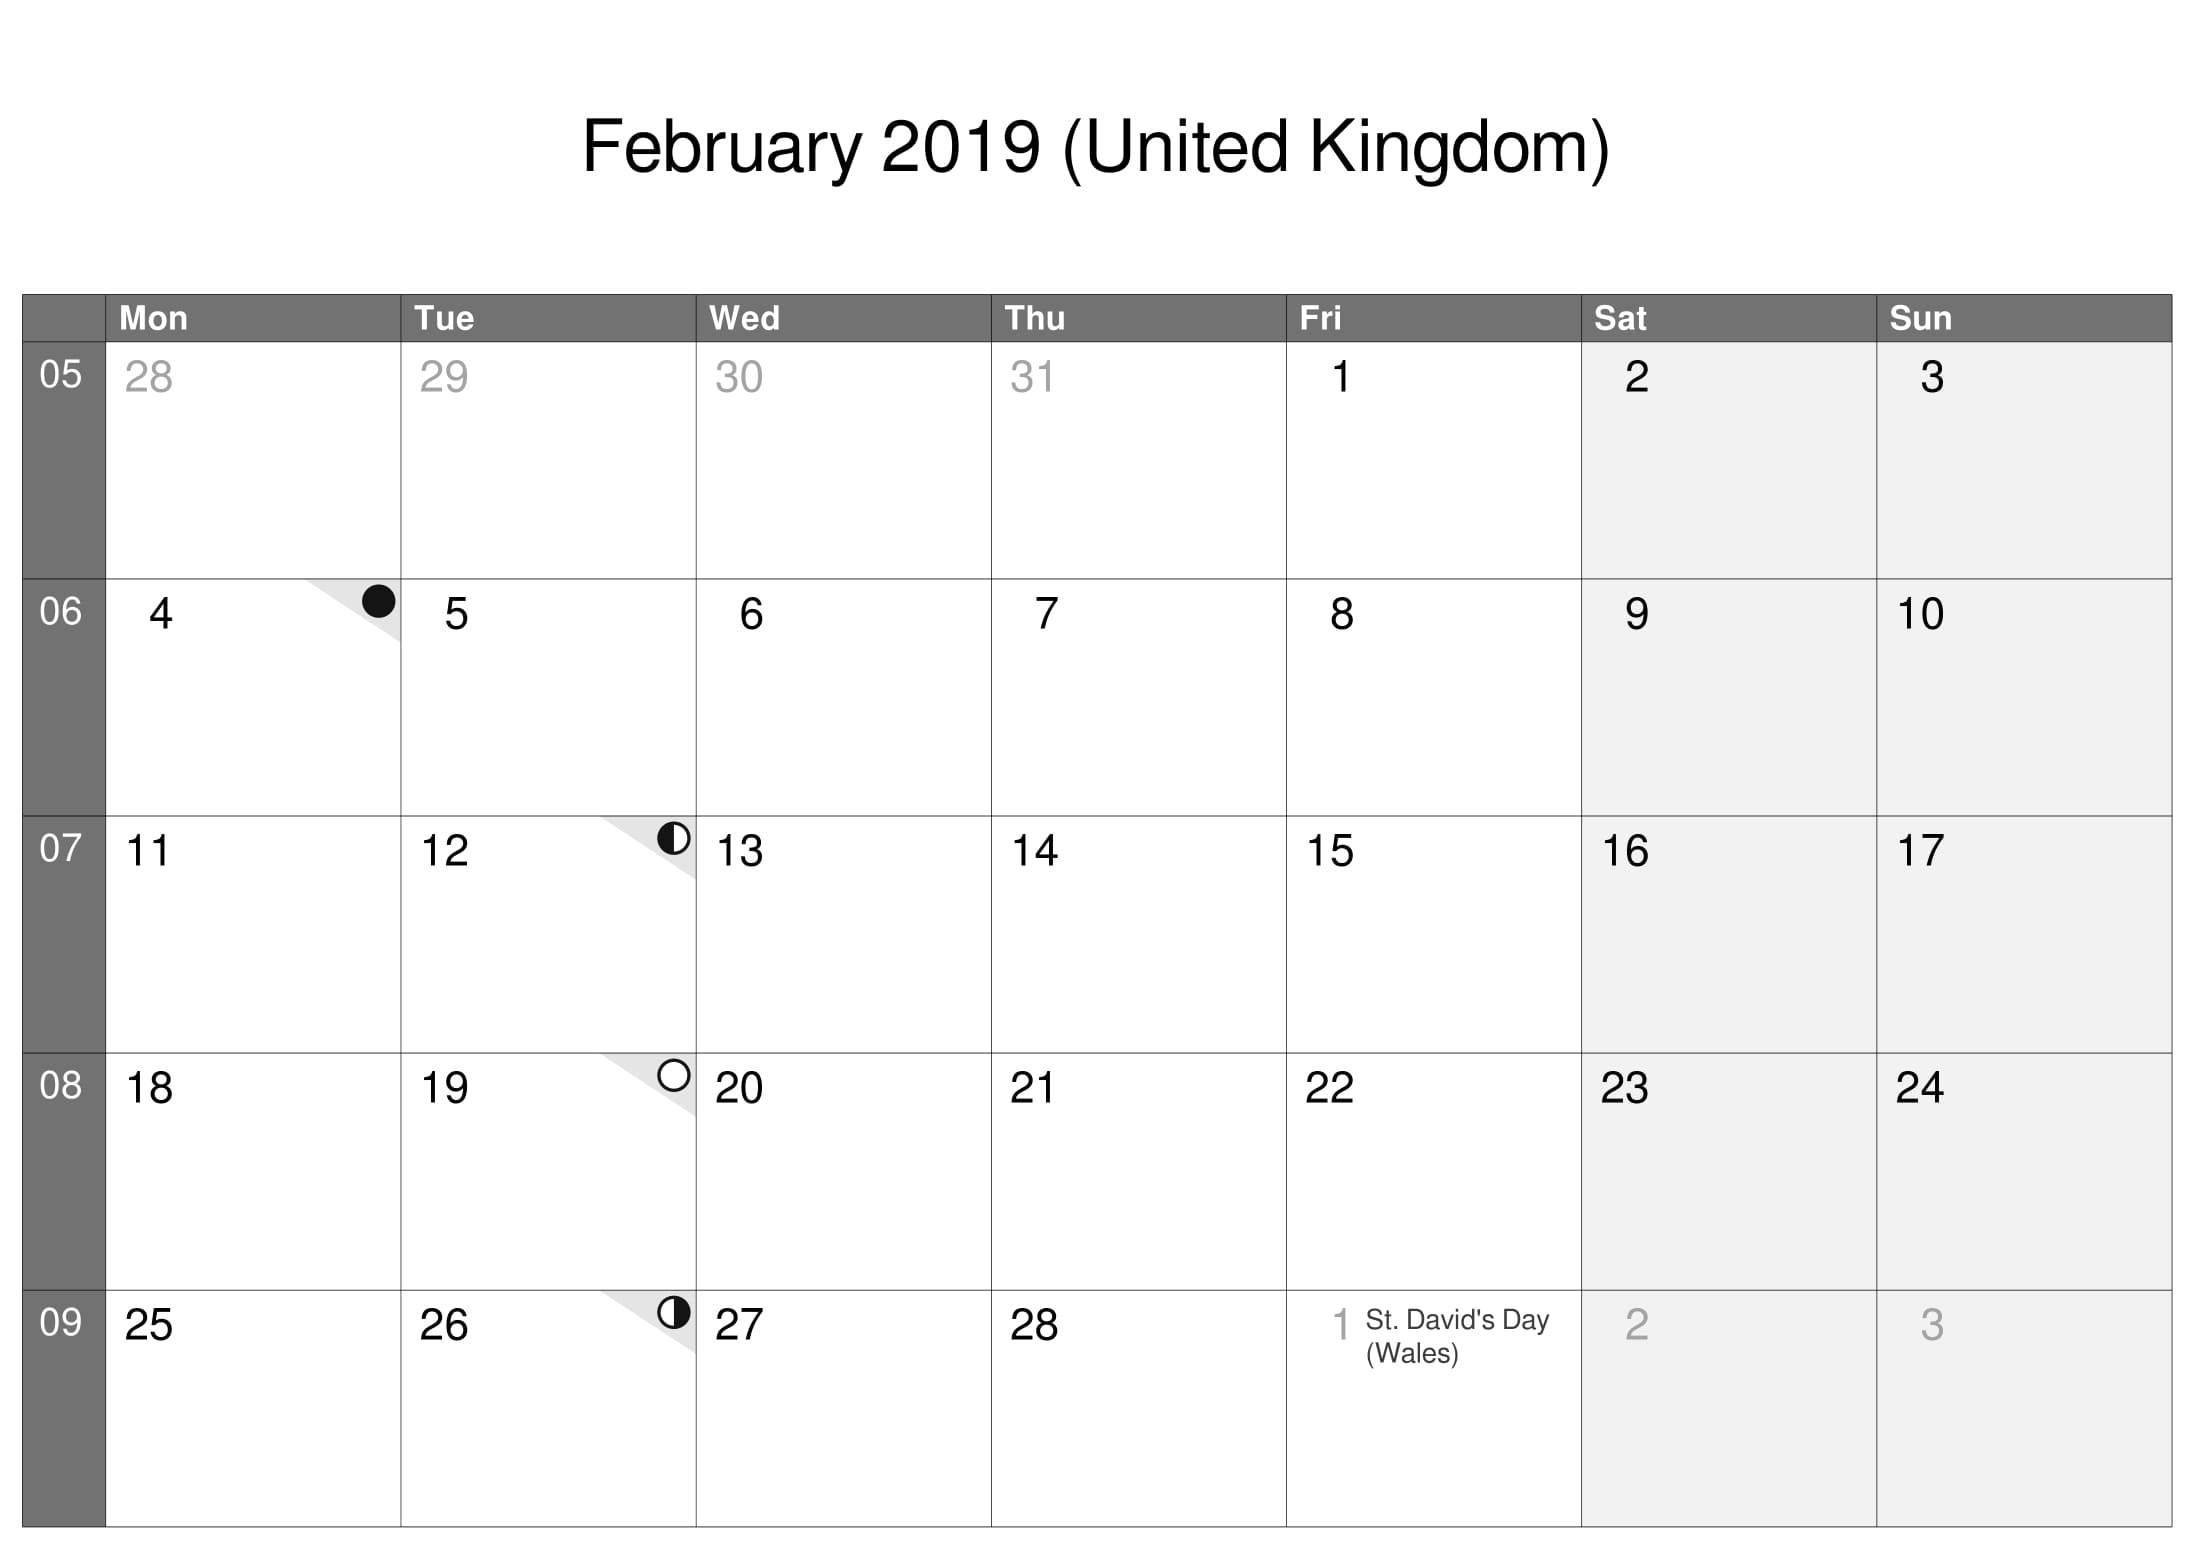 February 2019 Calendar UK With Moon Phases